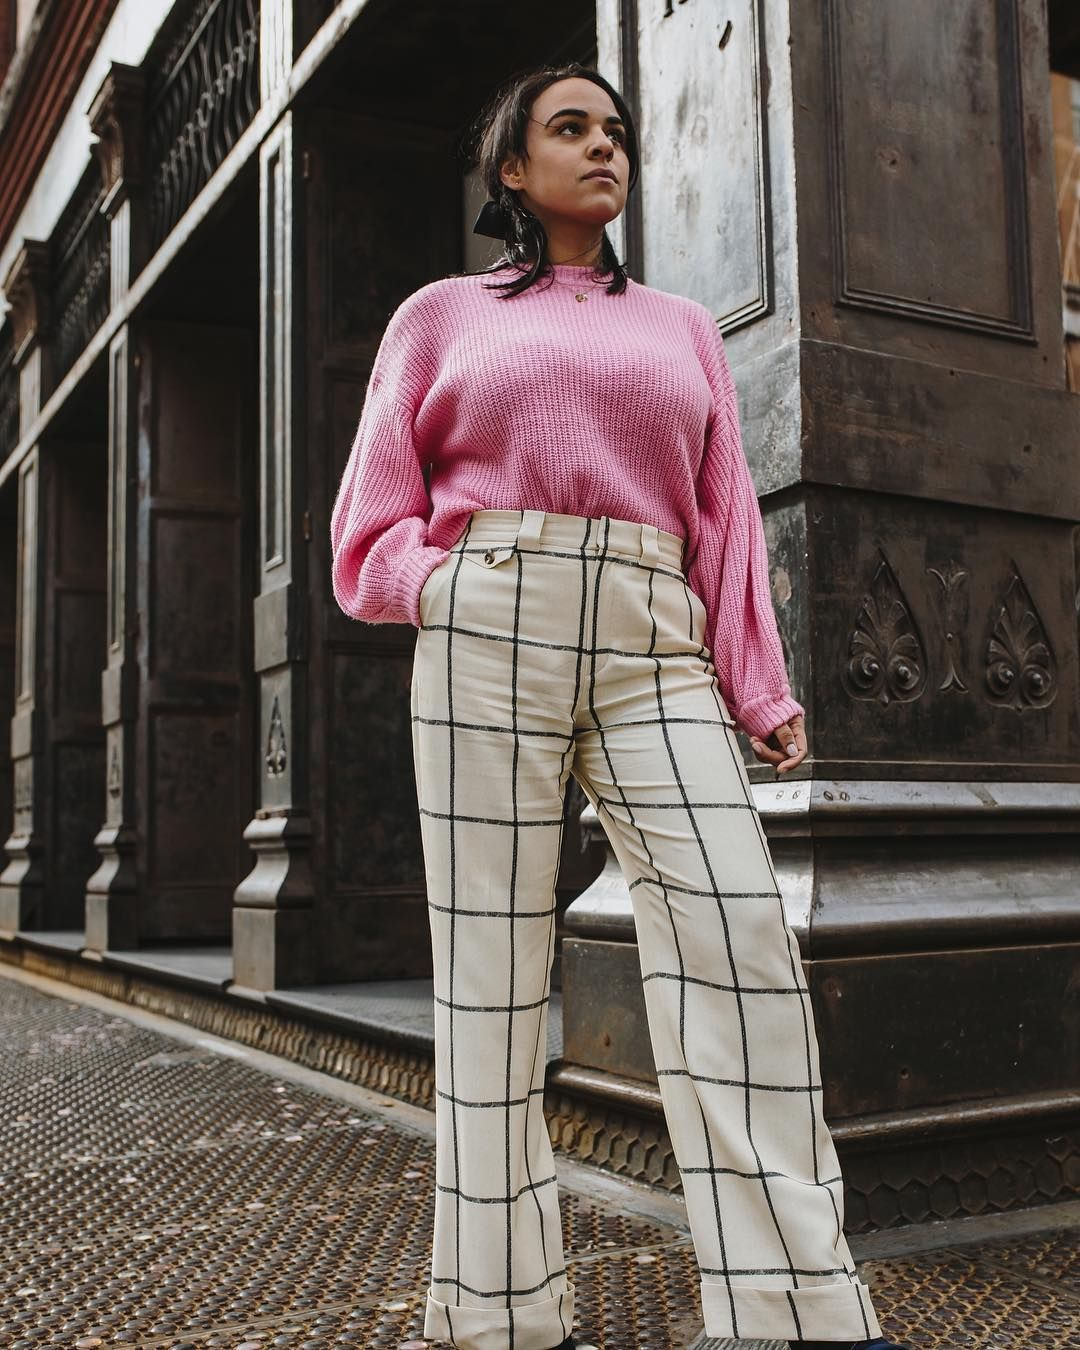 Pink sweater outfit   Checked pants   Sweater weather   Plaid pants   Fashion Blogger   NYC blogger   Travel blogger   @plsdotell